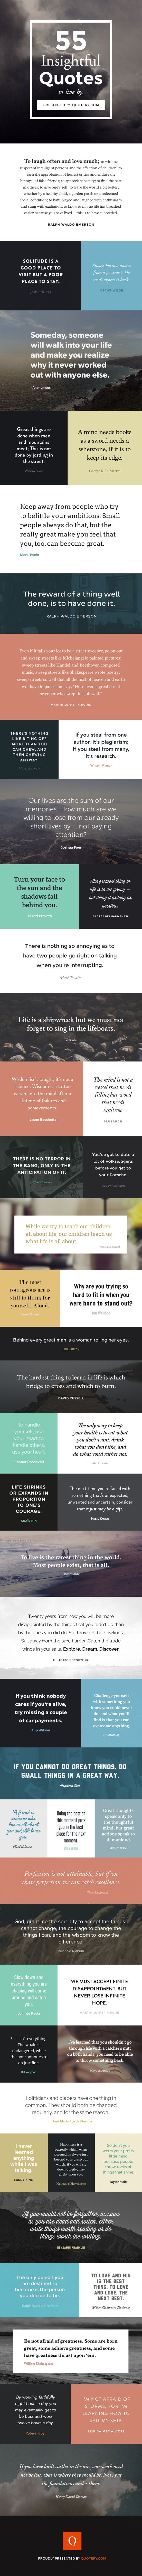 Less known, but highly insightful quotes from world's best authors are visualized in a great infographic from Quotery. If you love quotes,…